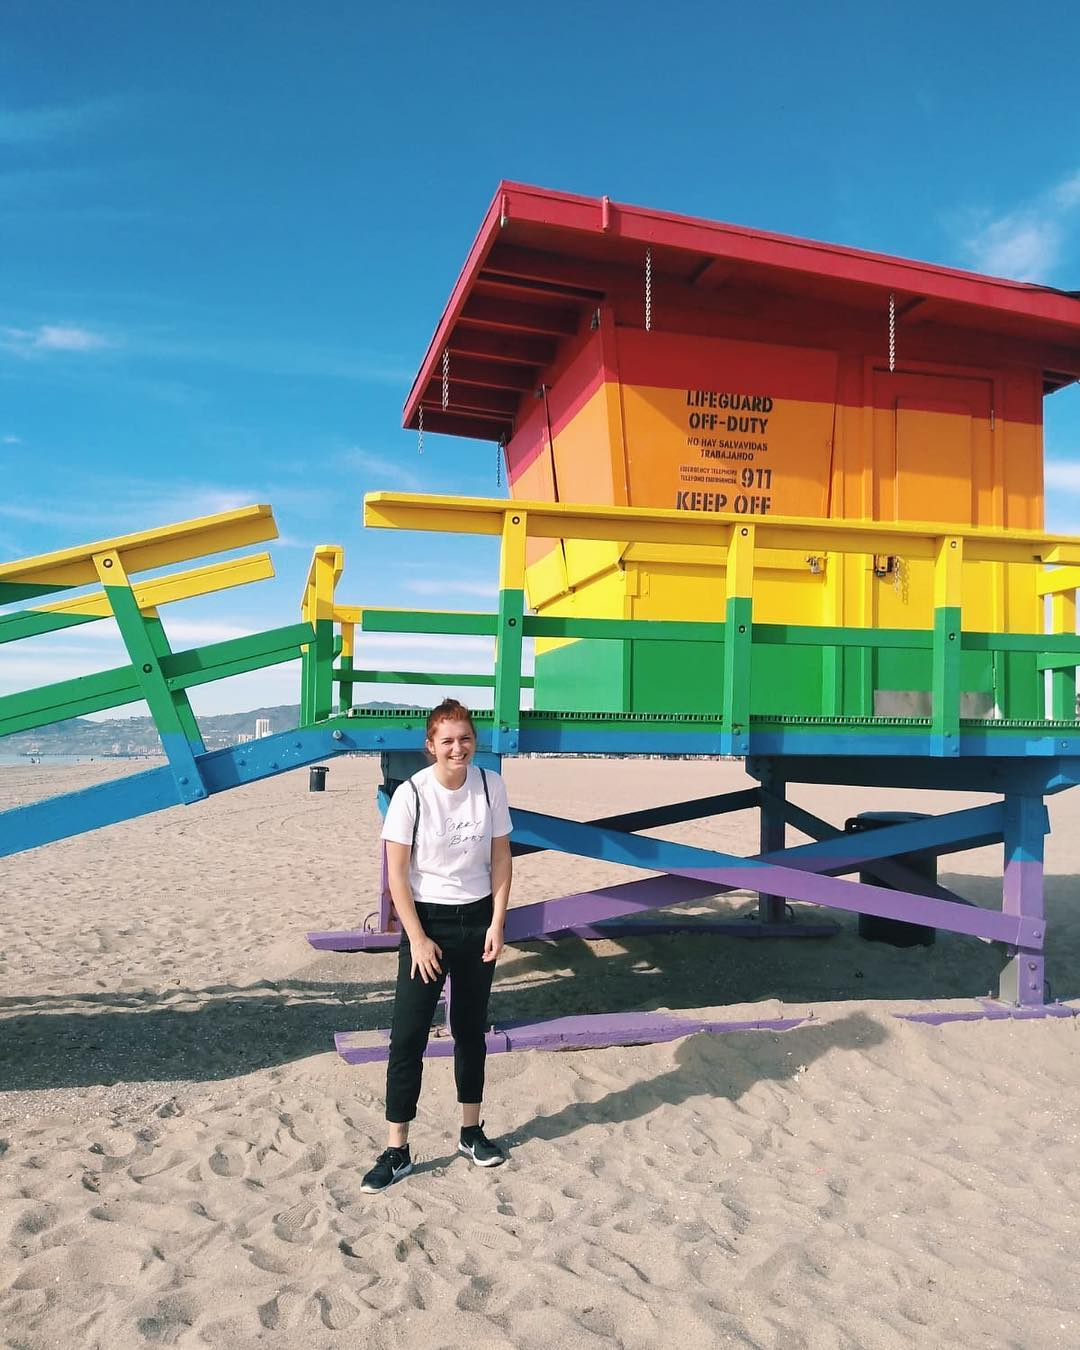 Venice Pride Lifeguard Tower in Los Angeles with lesbian local Esmee